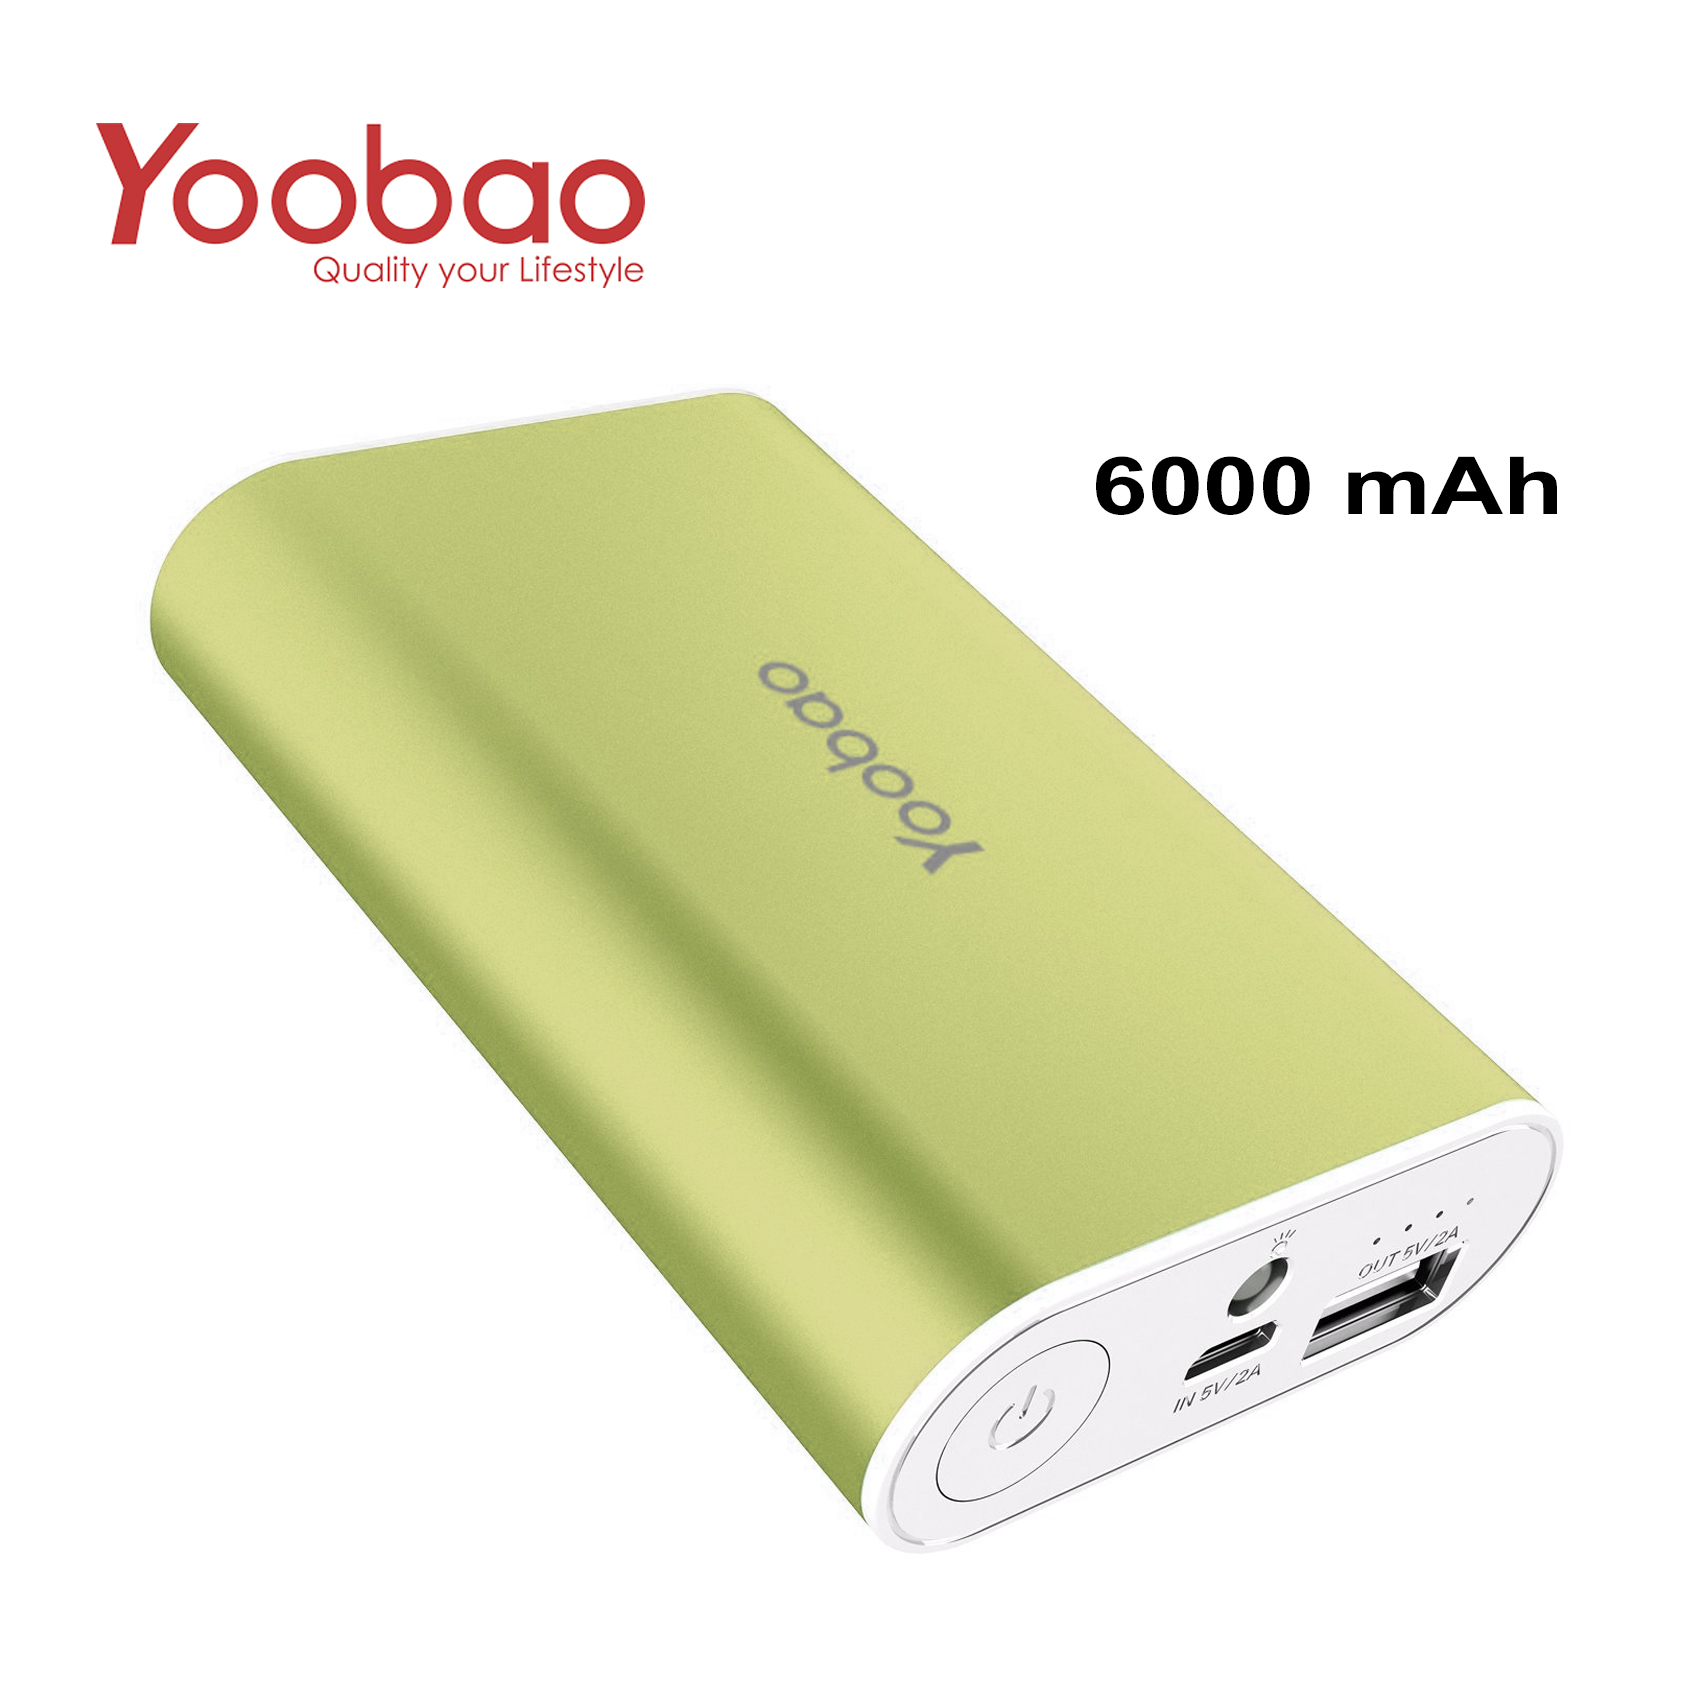 YOOBAO Intelligent Power Bank S3 6000mAh Portable Charger - Green